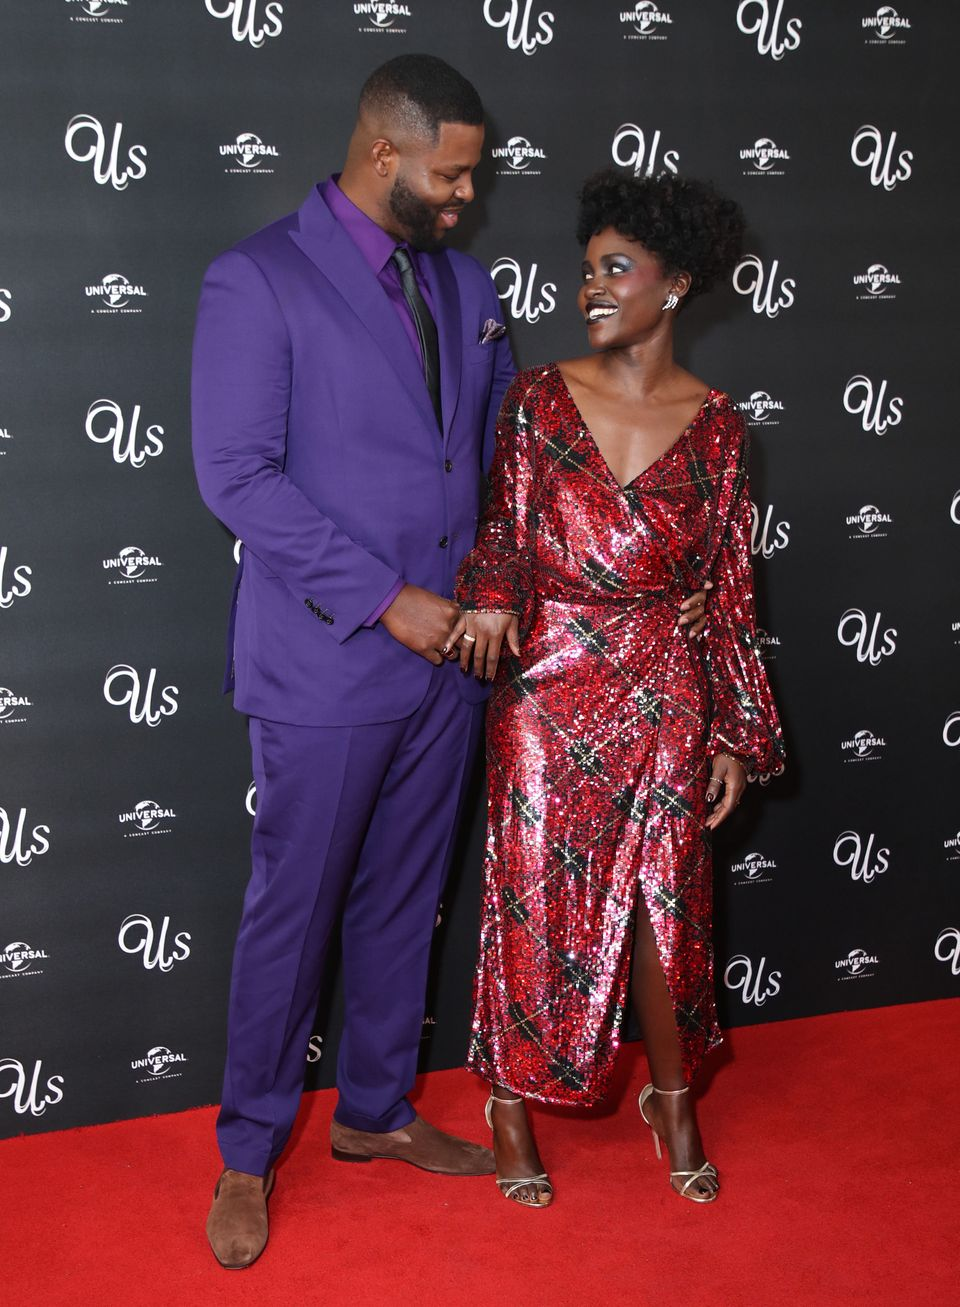 Winston with his Us and Black Panther co-star, Lupita